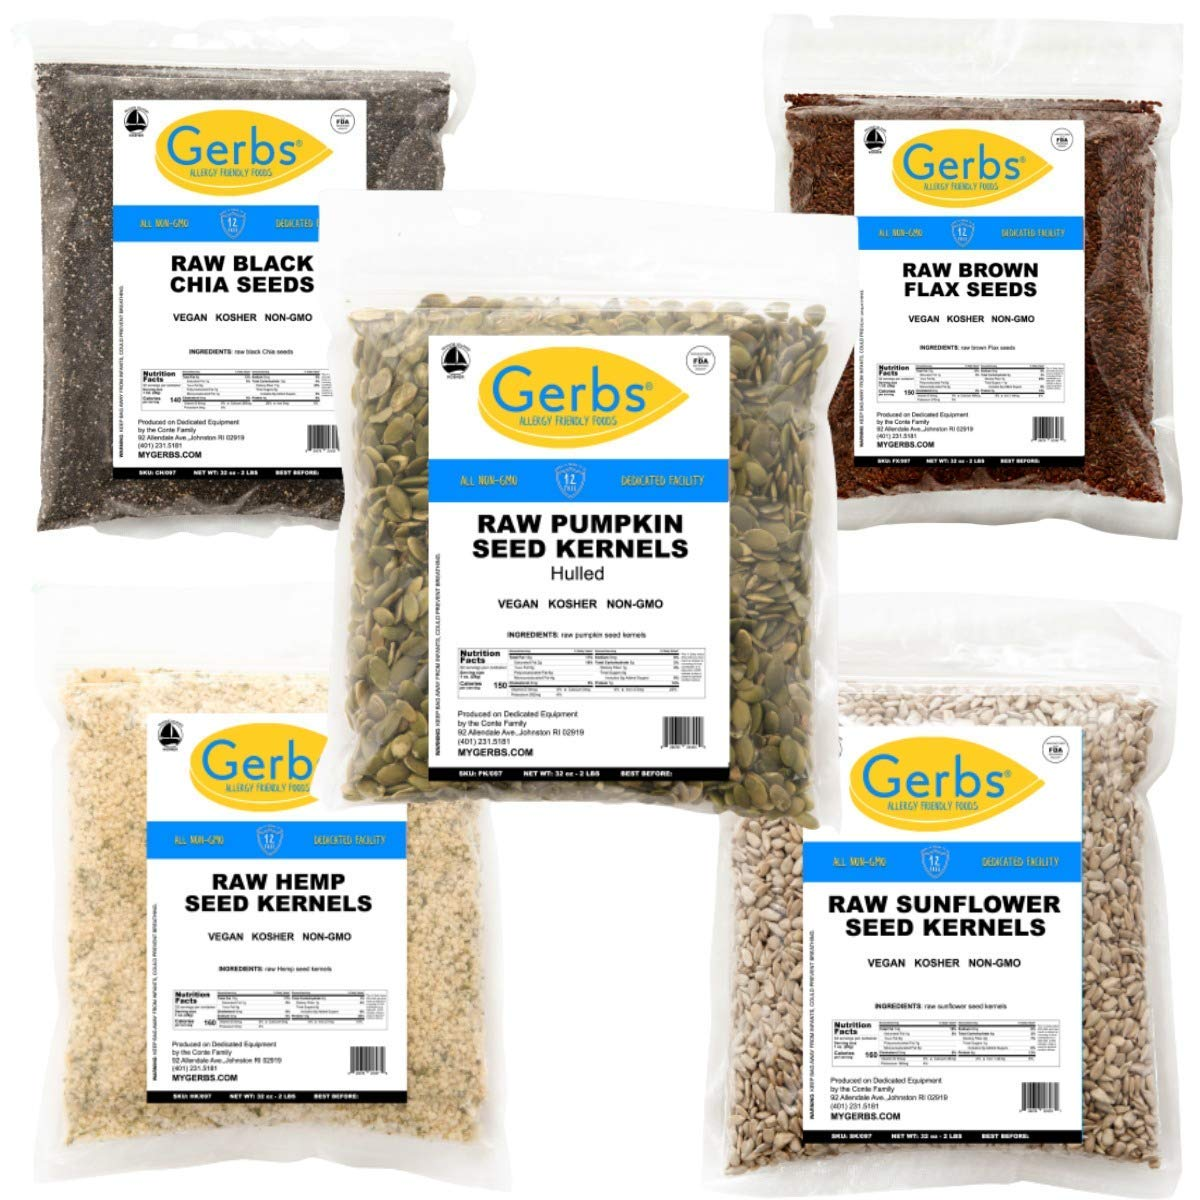 GERBS Raw Super Seeds Salad Mix One Variety Pack | 32oz Bags of Raw Pumpkin, Sunflower, Hemp Hearts, Black Chia and Brown Flax Seeds, Top 14 Food Allergen Free, Non GMO, Vegan, Keto, Paleo Friendly